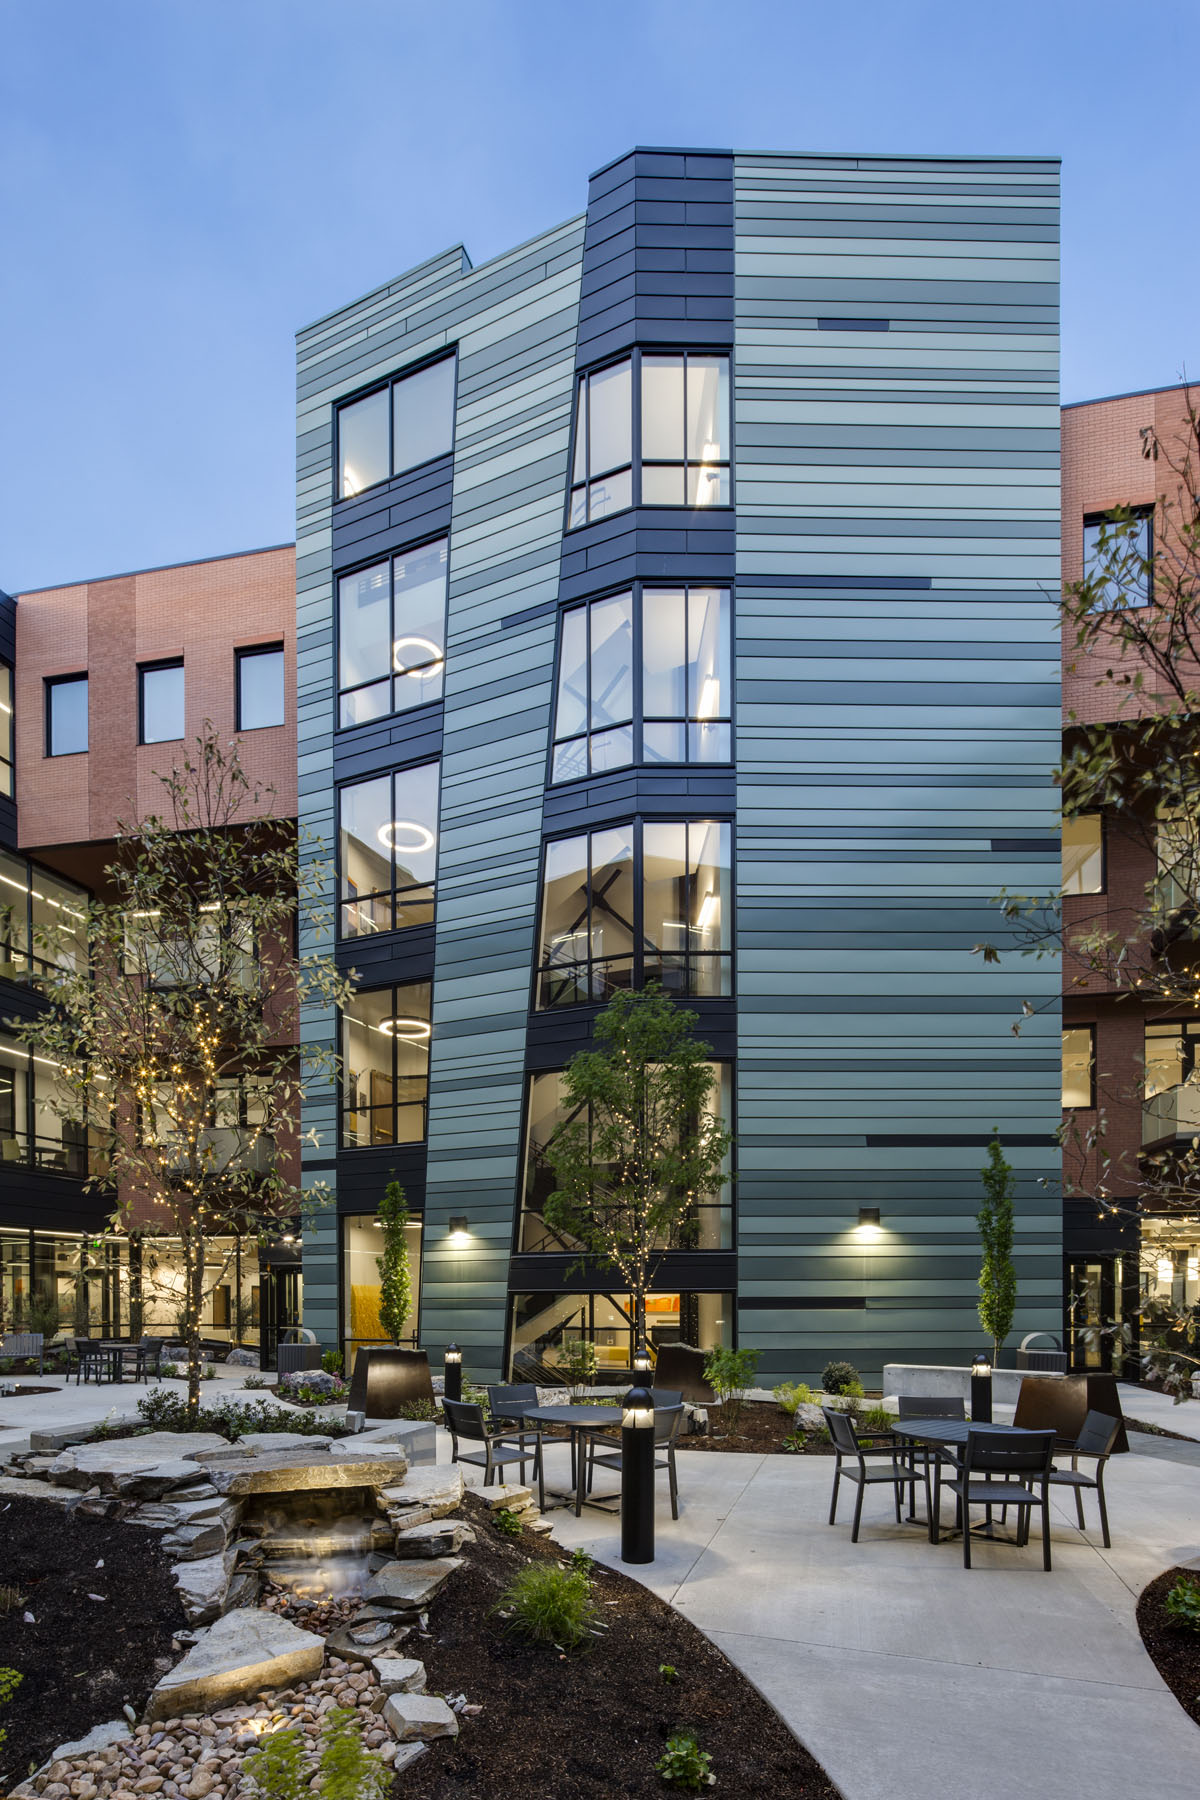 The striped exterior of the staircase stands out in the courtyard against the red brick and glass bridges as part of the healthcare design.